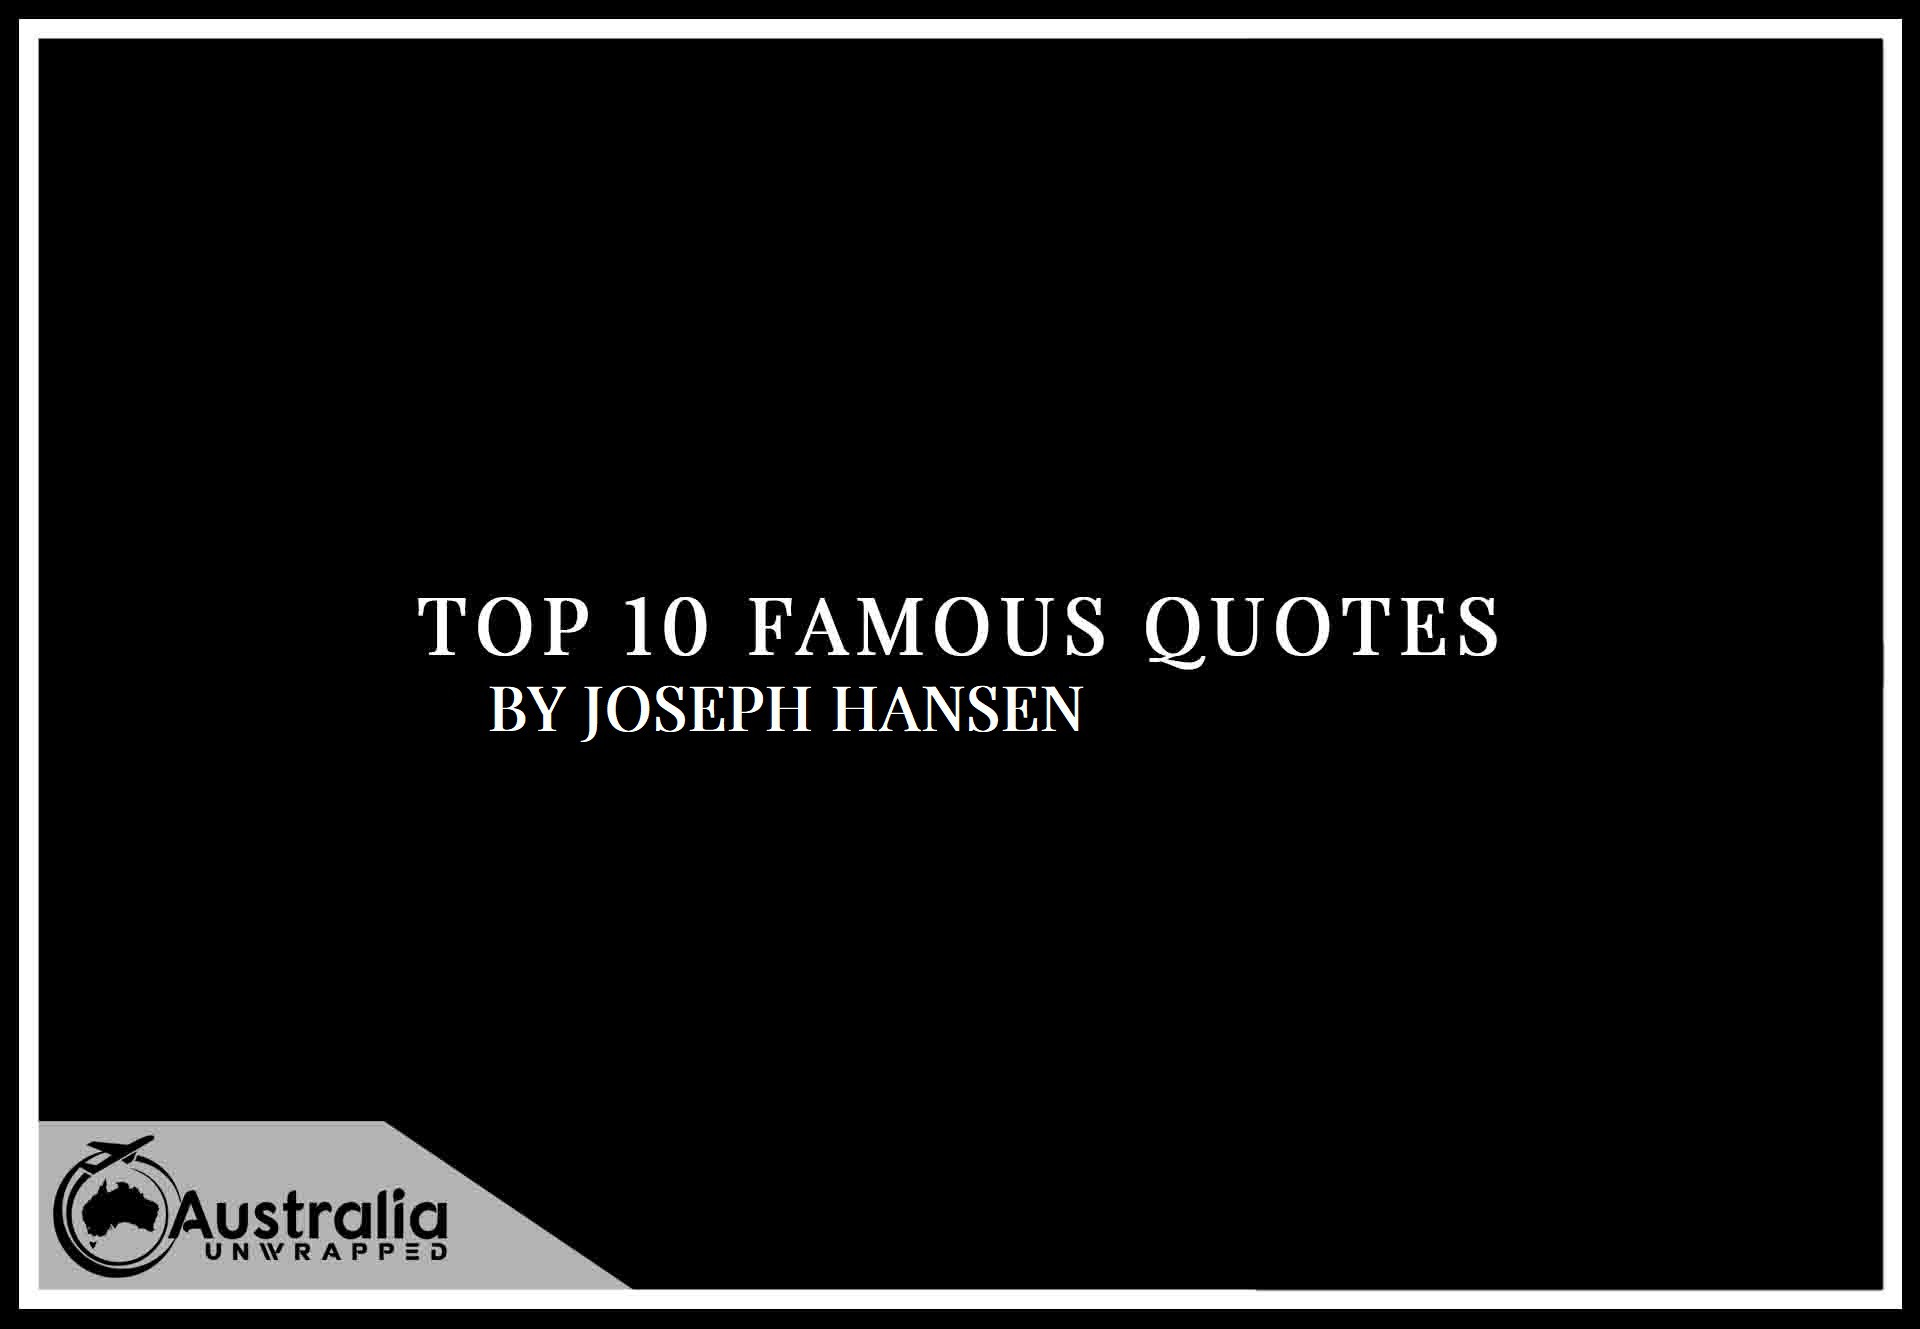 Top 10 Famous Quotes by Author Joseph Hansen